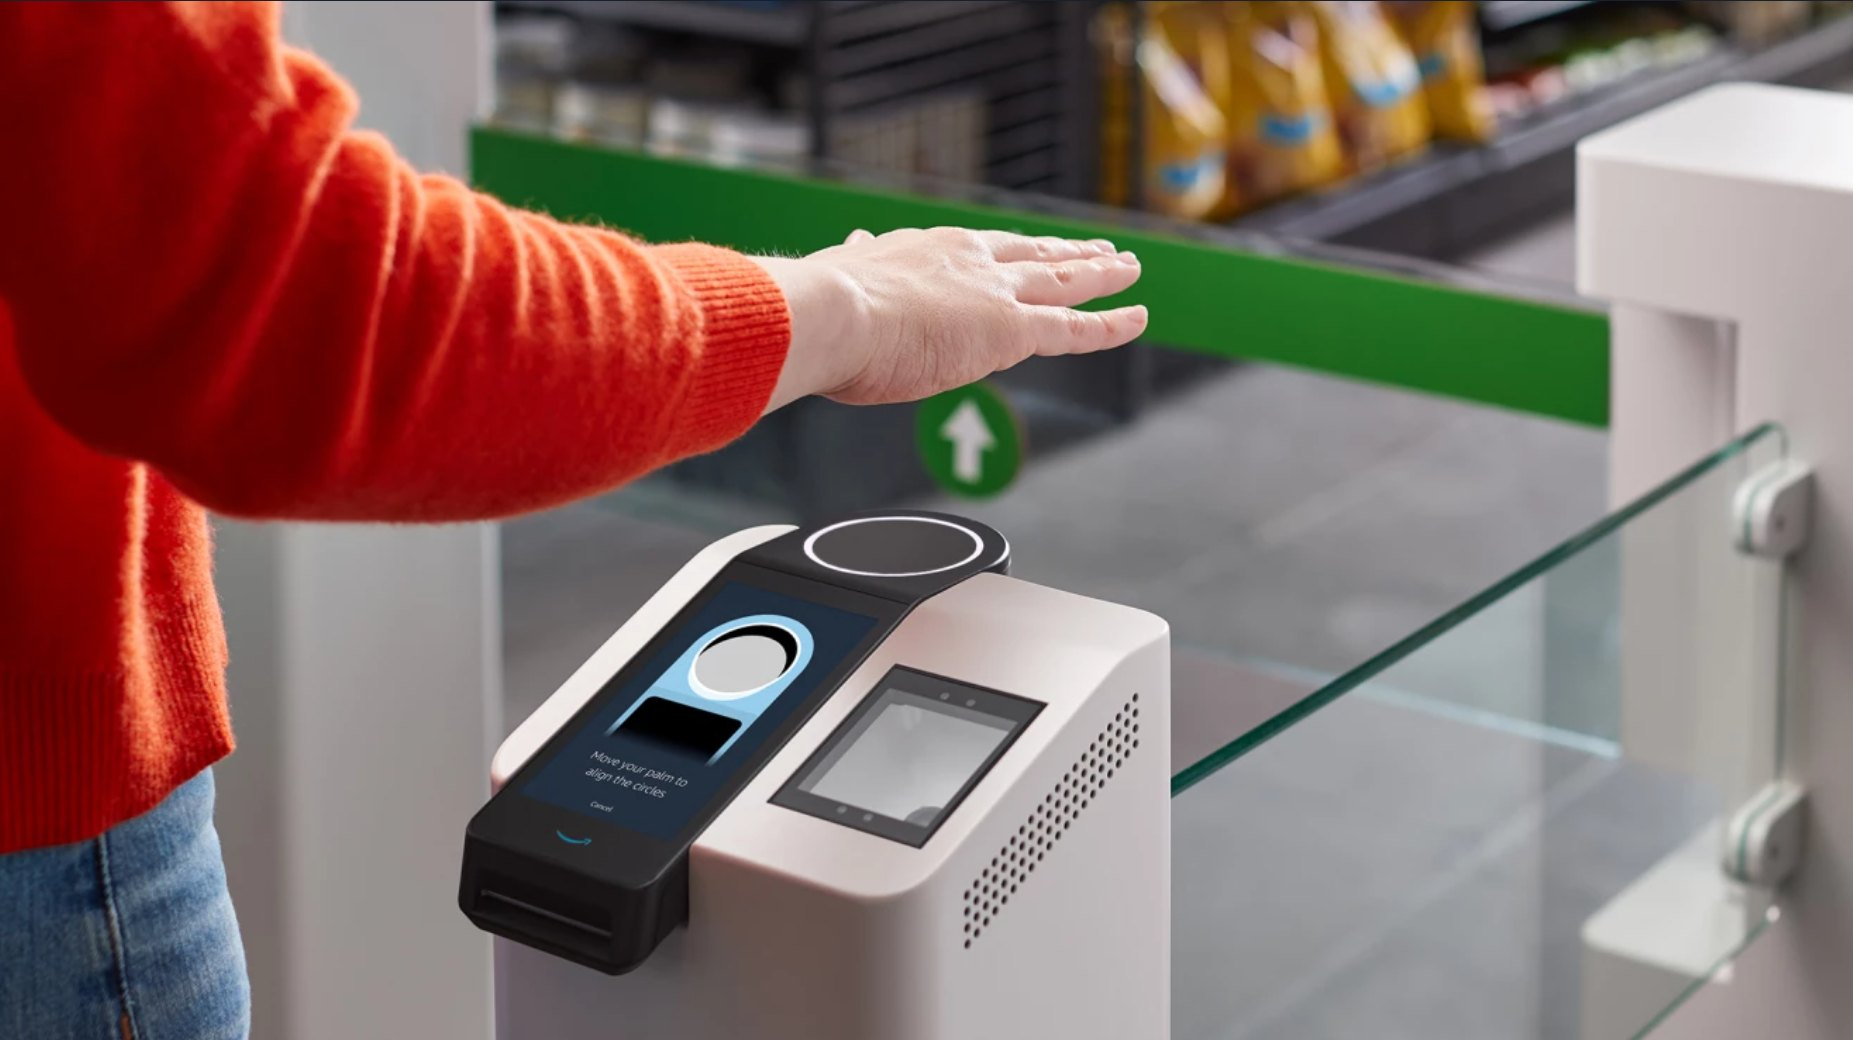 Amazon Adds Its Contactless Palm Reading One Tech To More Go Stores